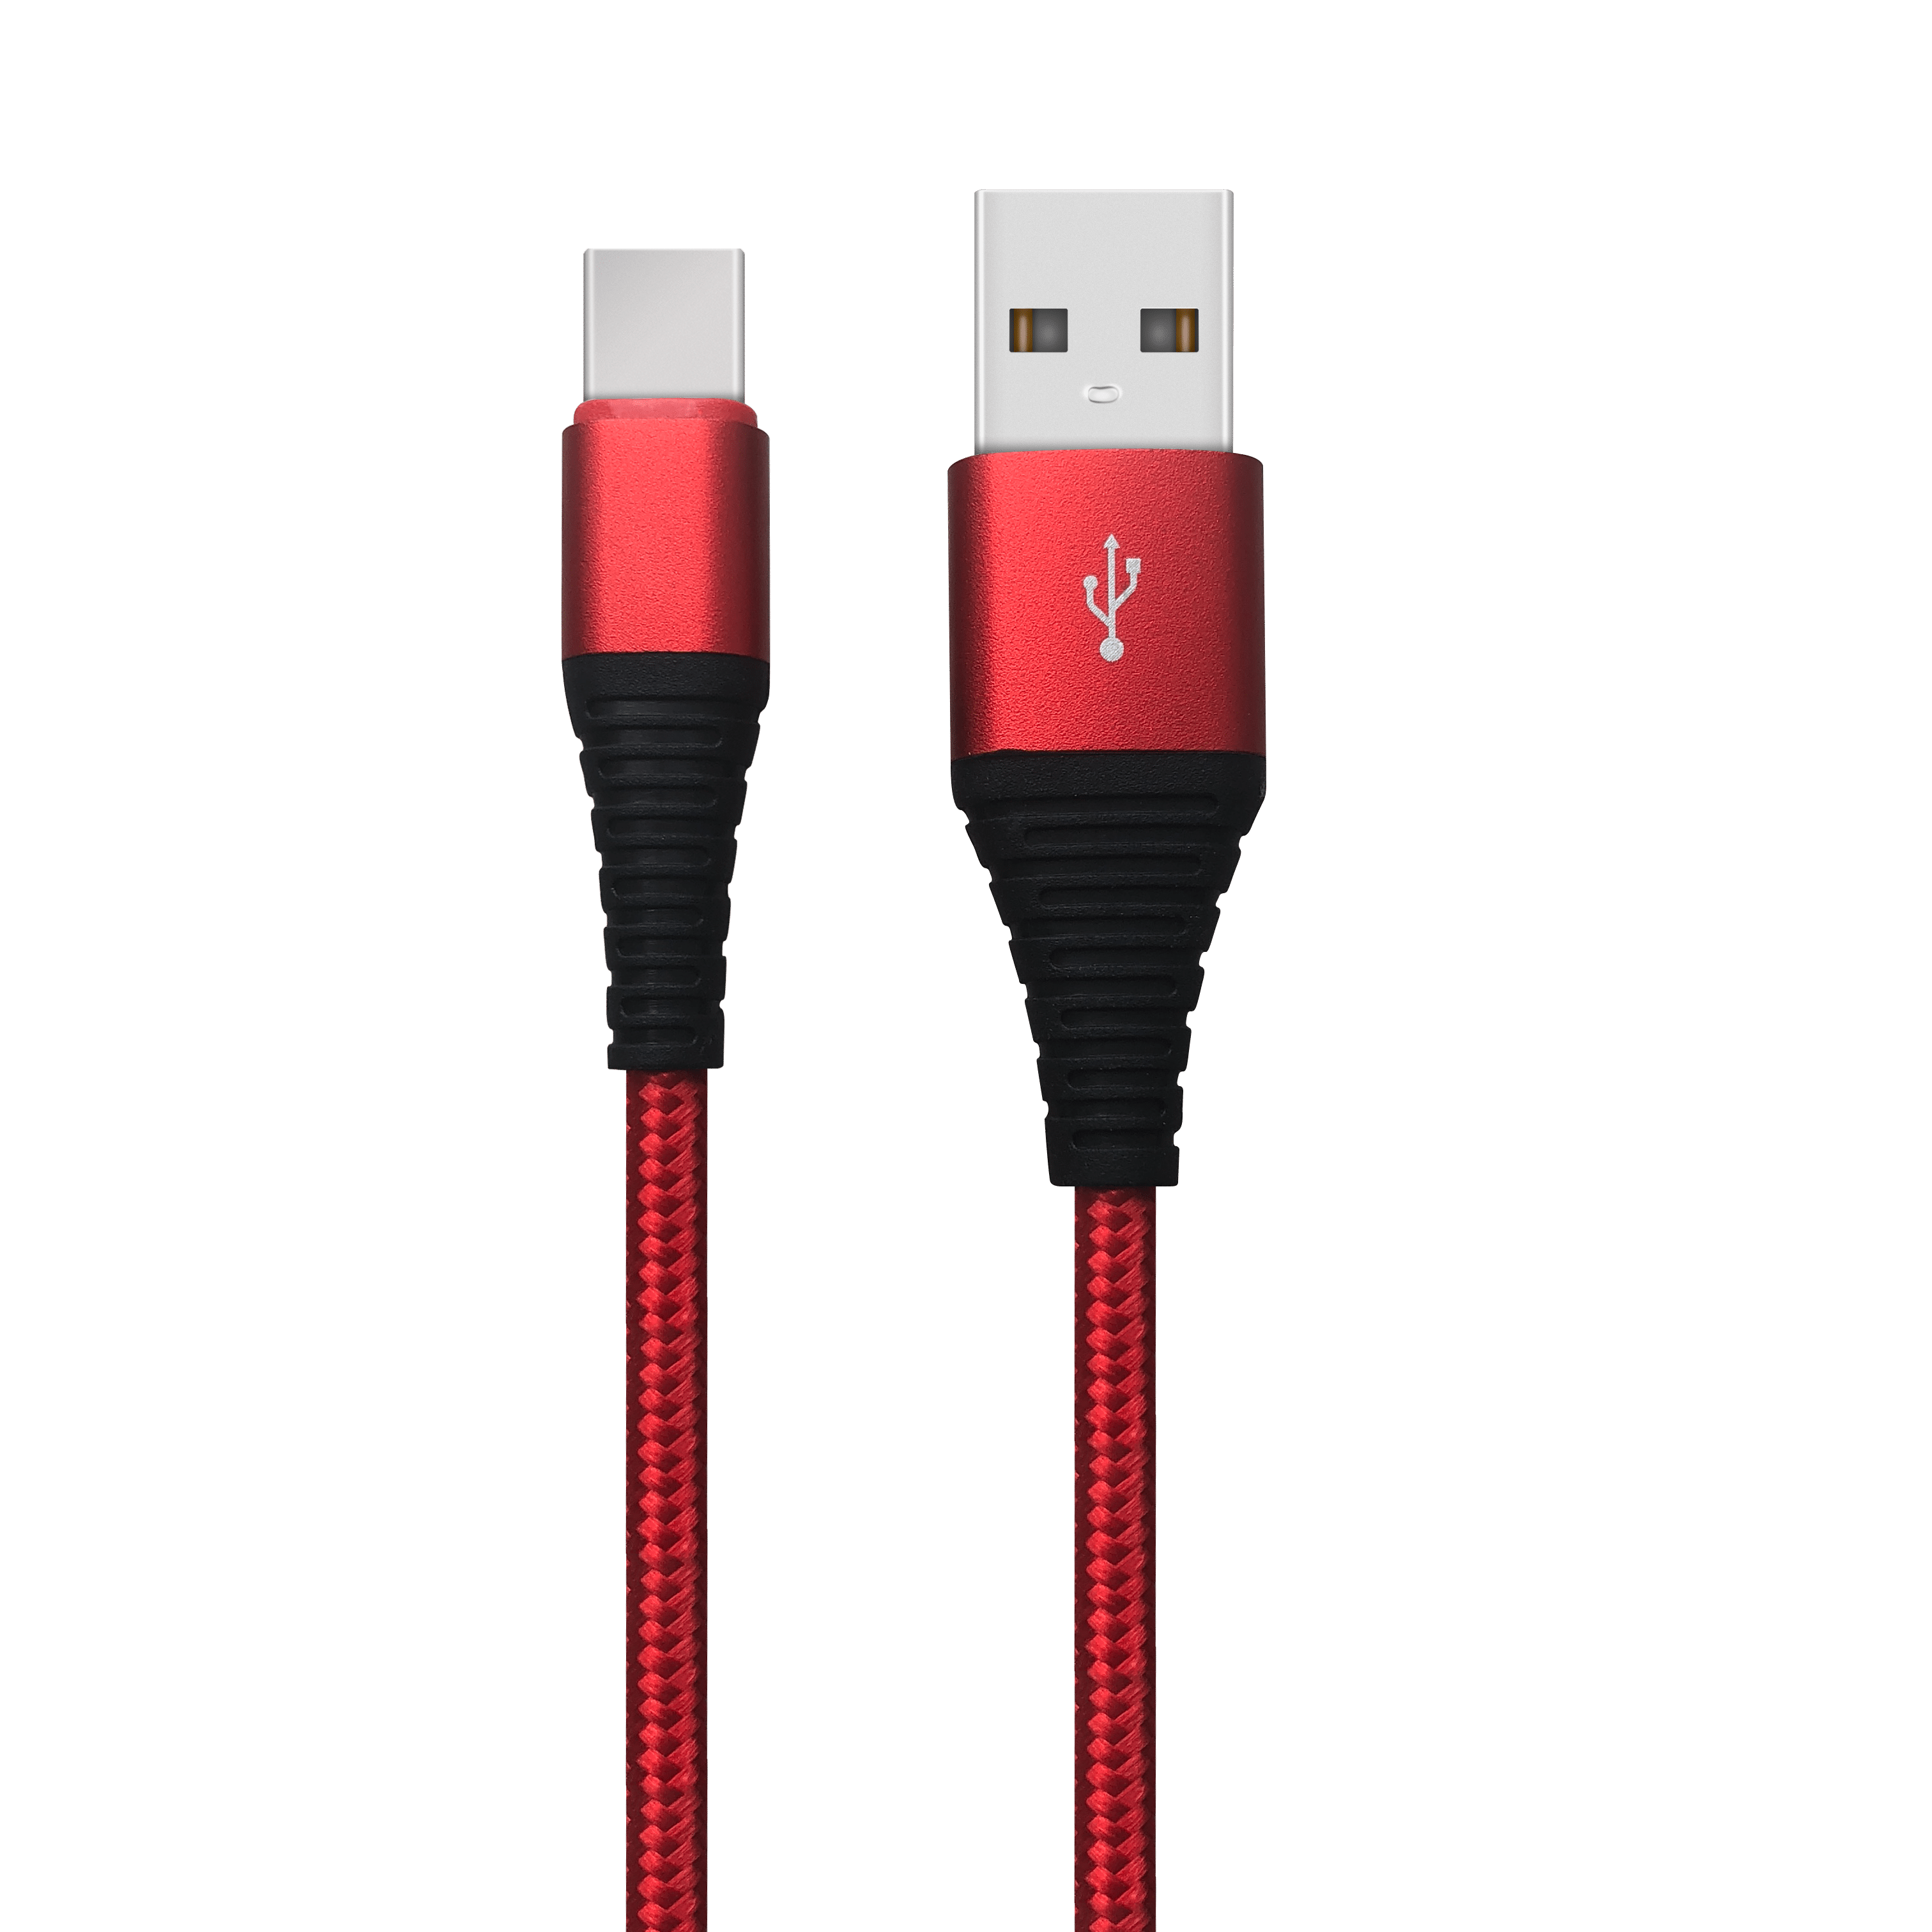 mfi certified mobile phone cellphone charging data cable